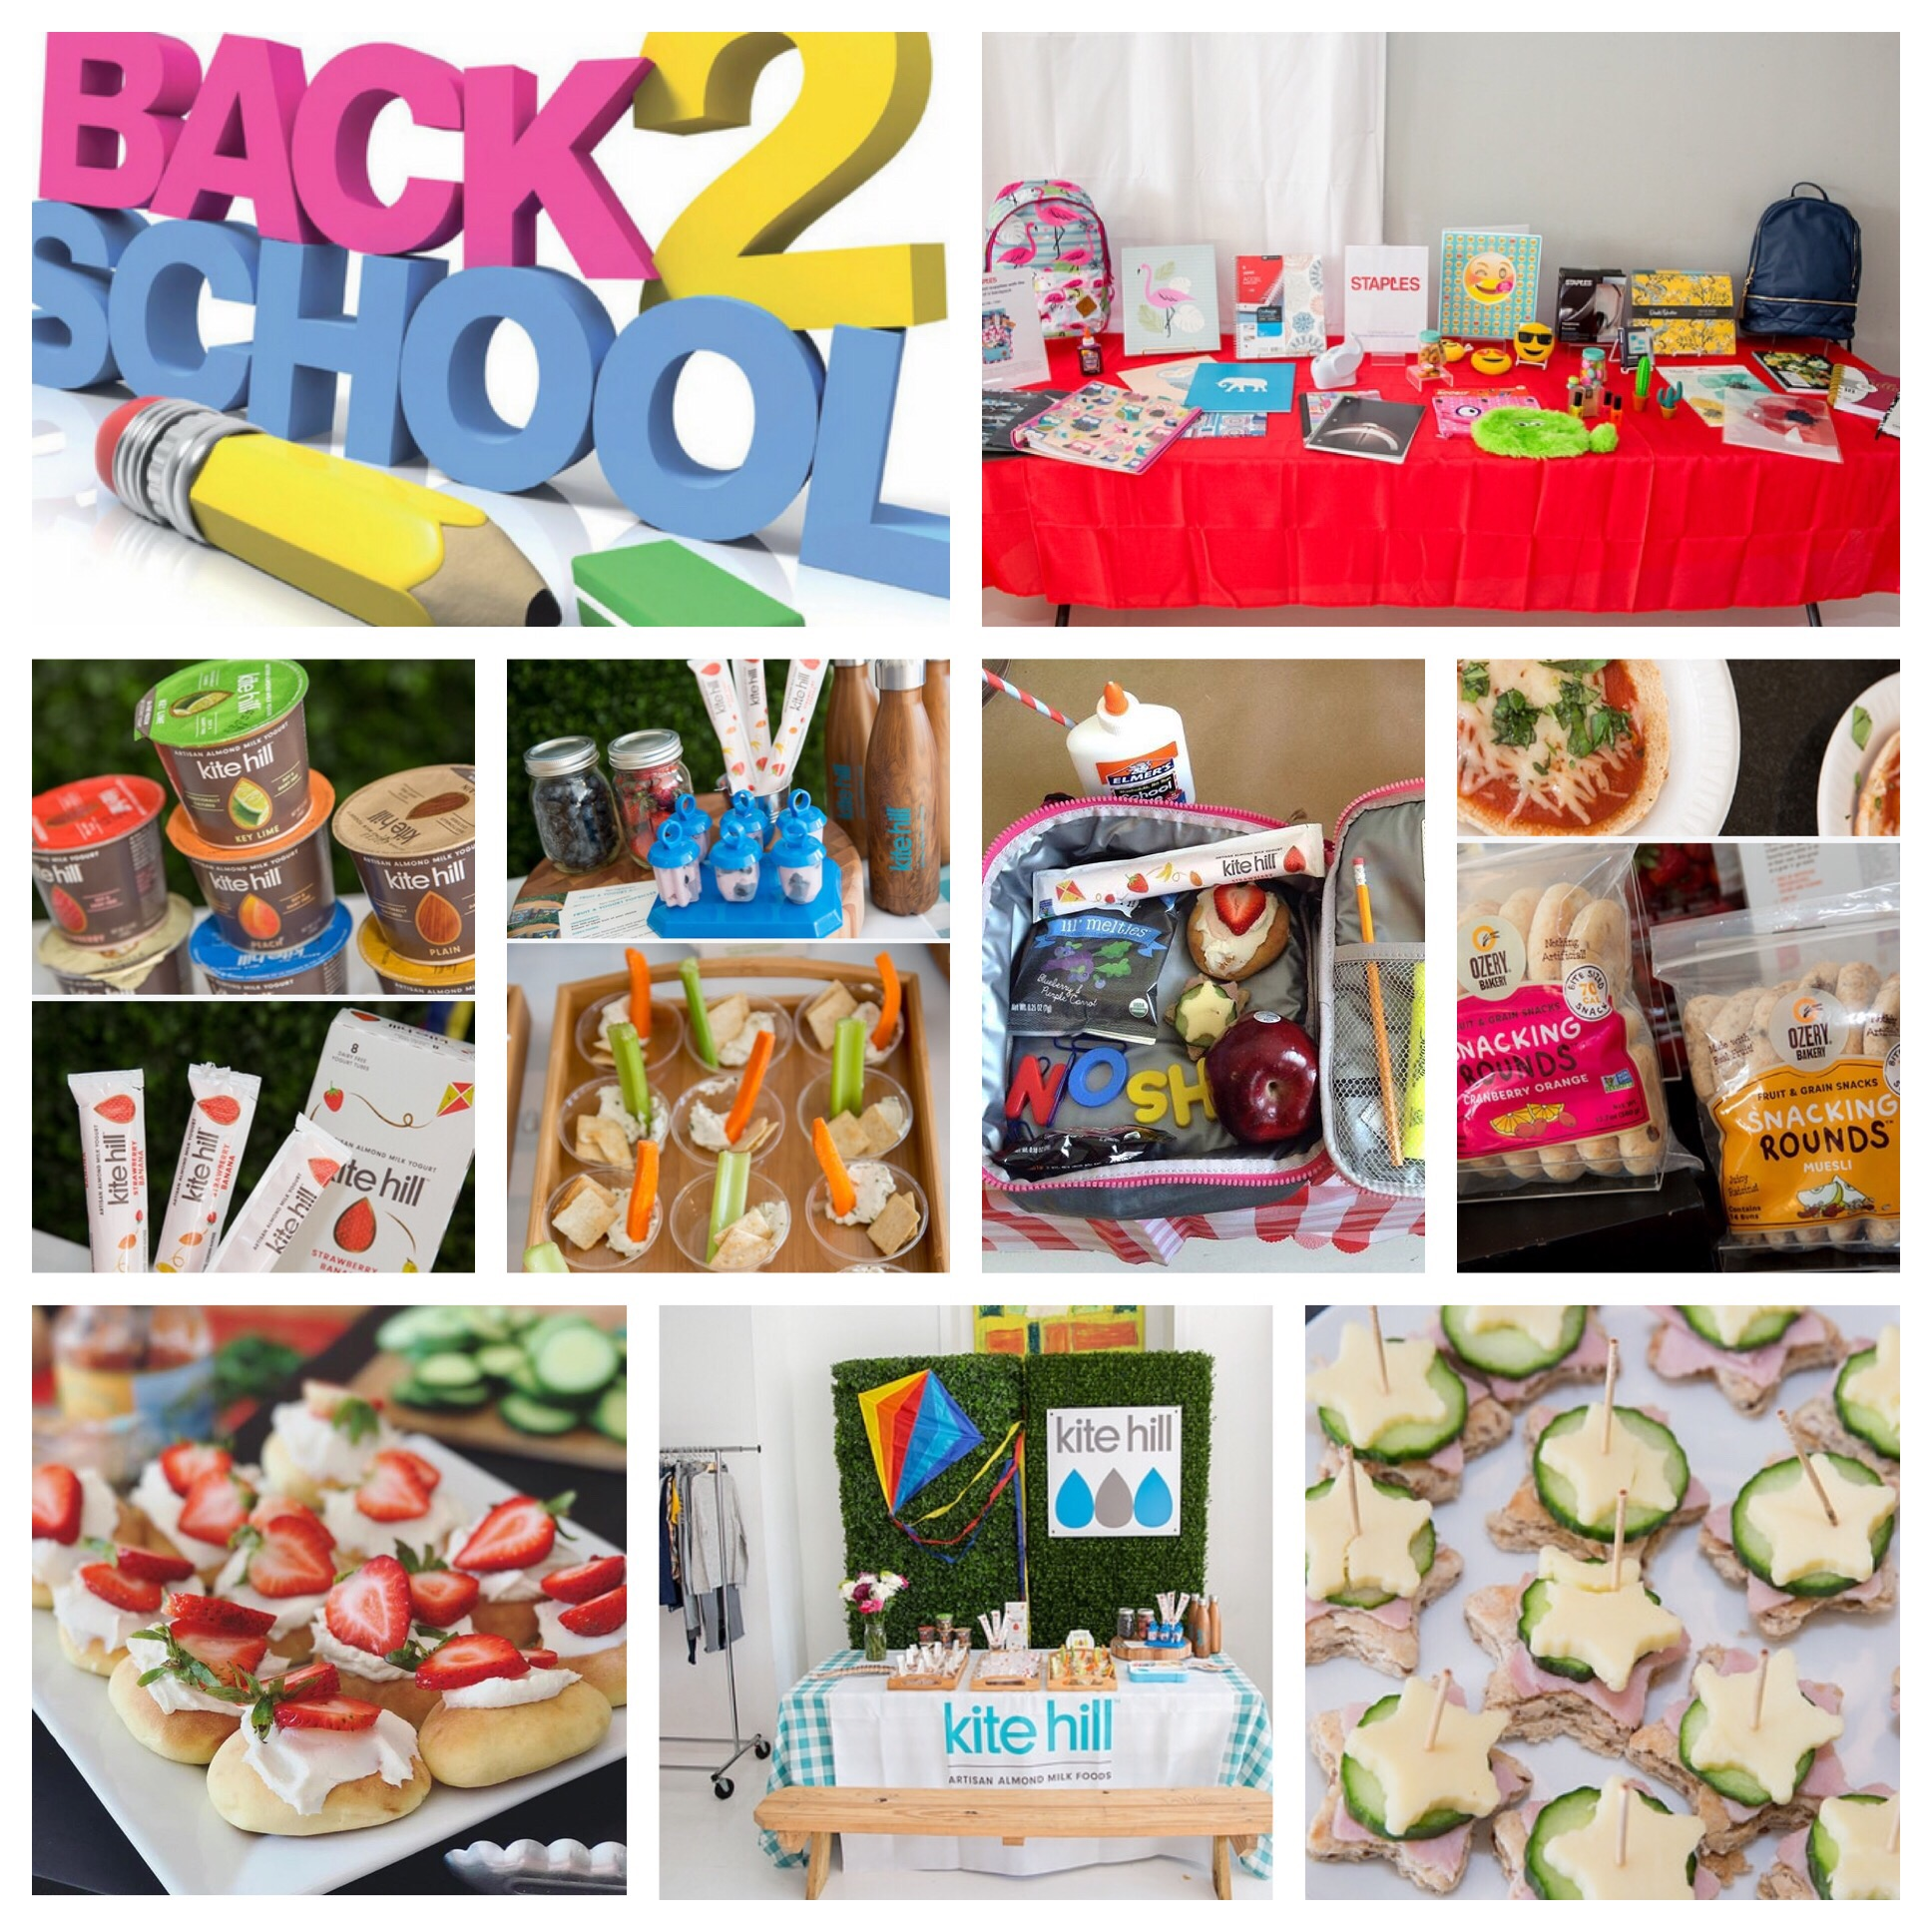 Back To School Bash With Momtrends  MomtrendsSchool  09f615021f107